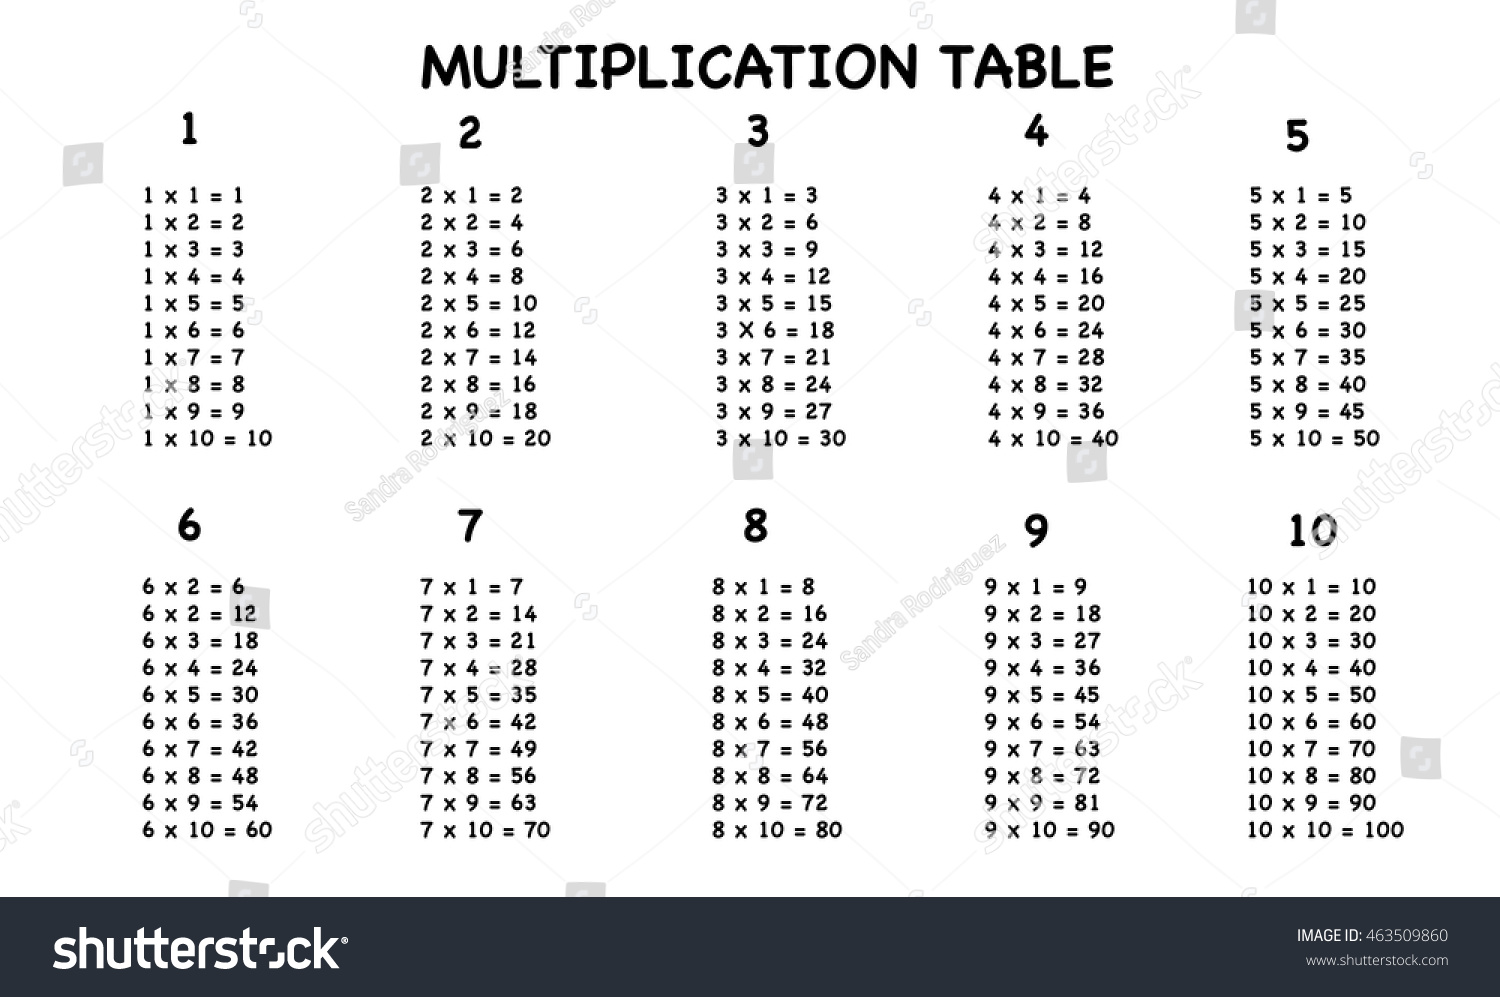 how to show your work for multiplication